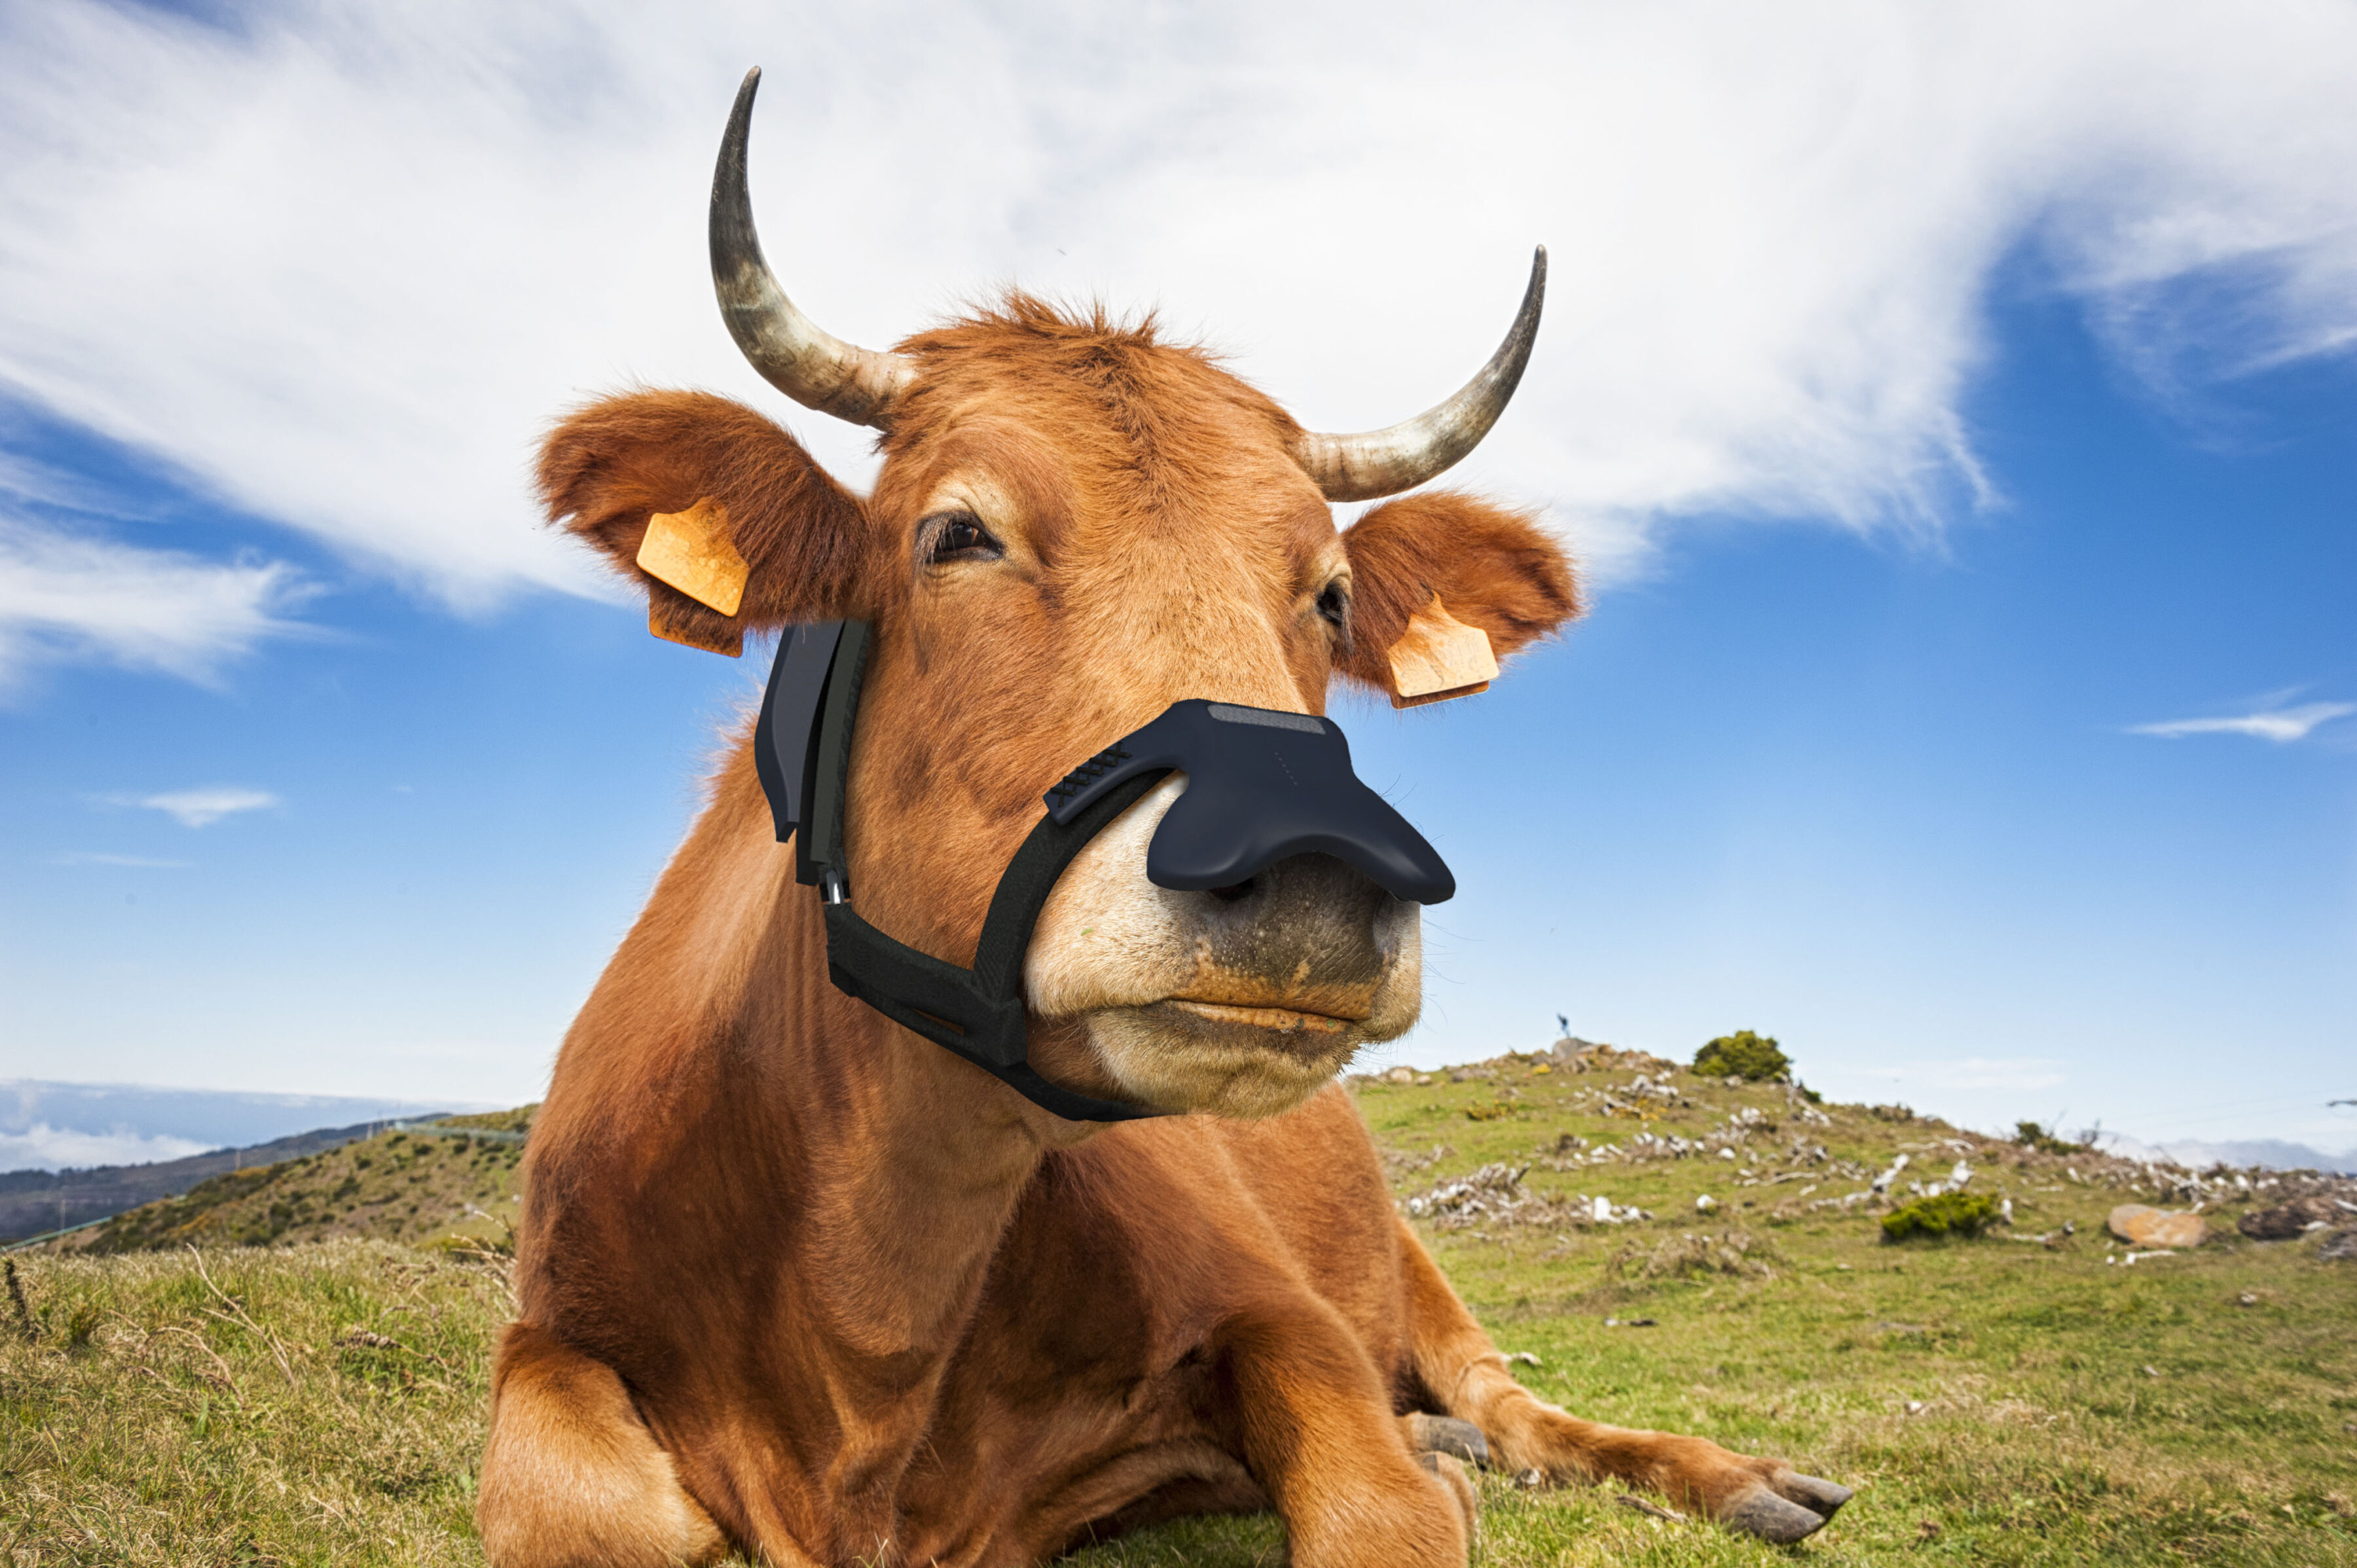 Brown cow wearing a black face mask